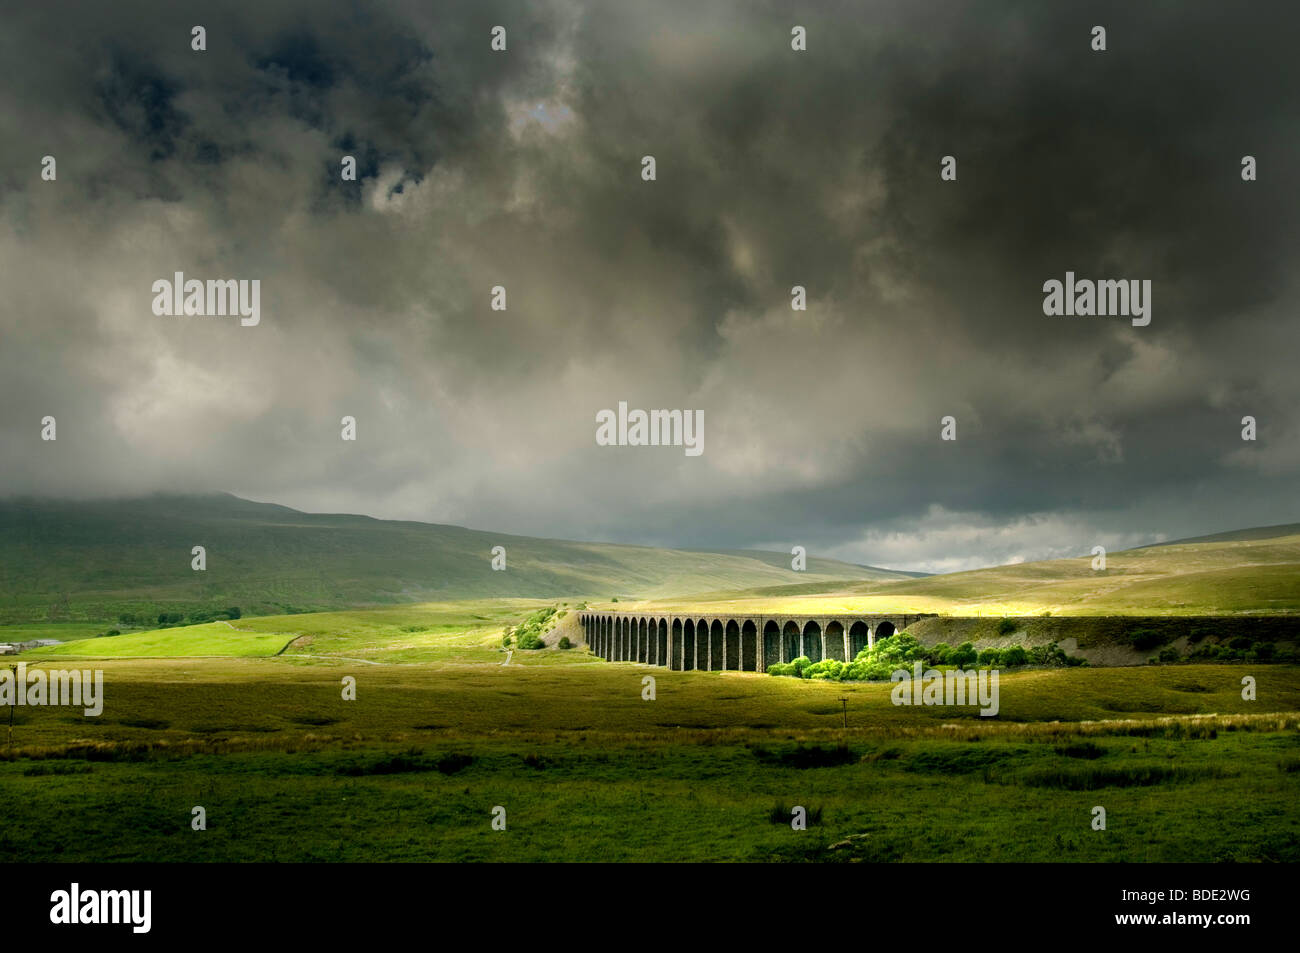 Ribblehead Viaduct, in the Yorkshire Dales - Stock Image